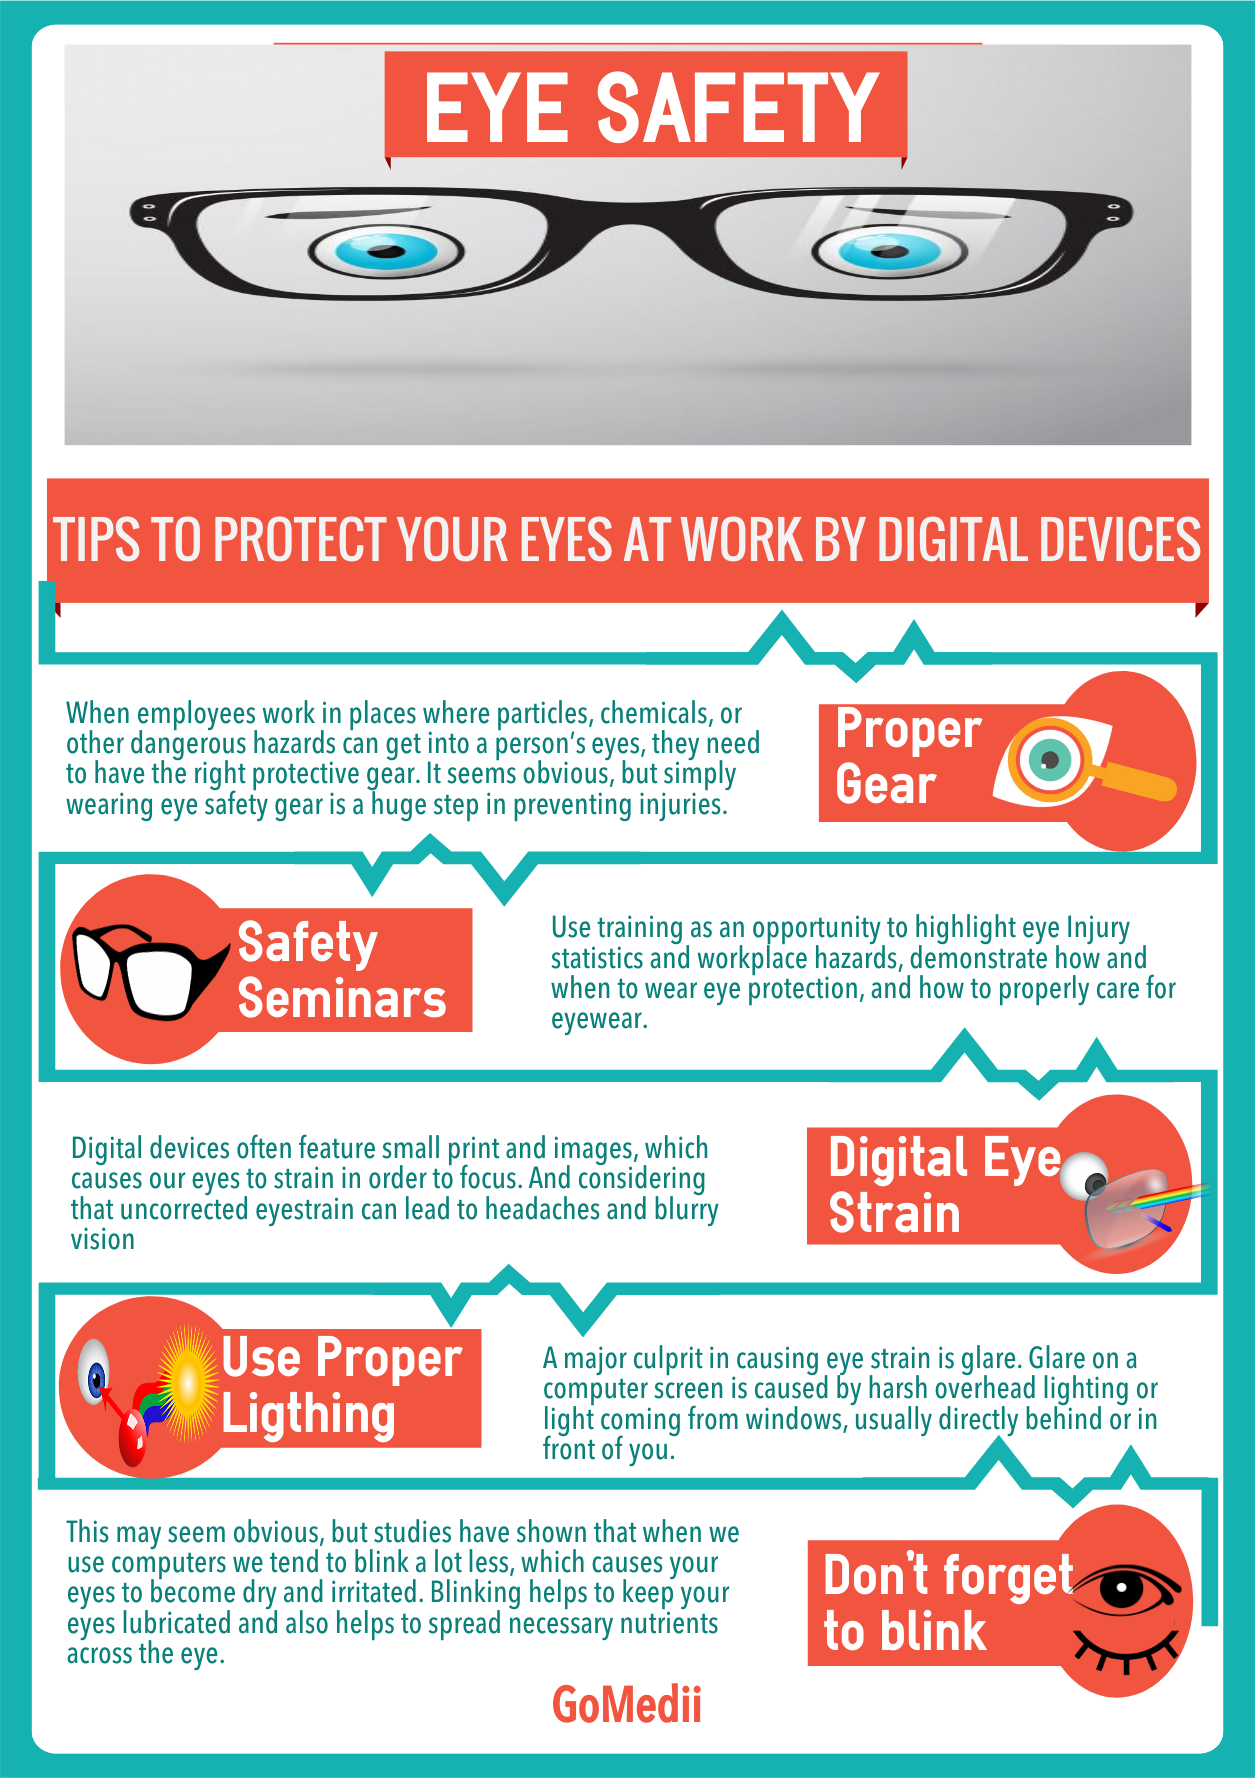 Top 5 Tips To Protect Your Eyes At Workplace